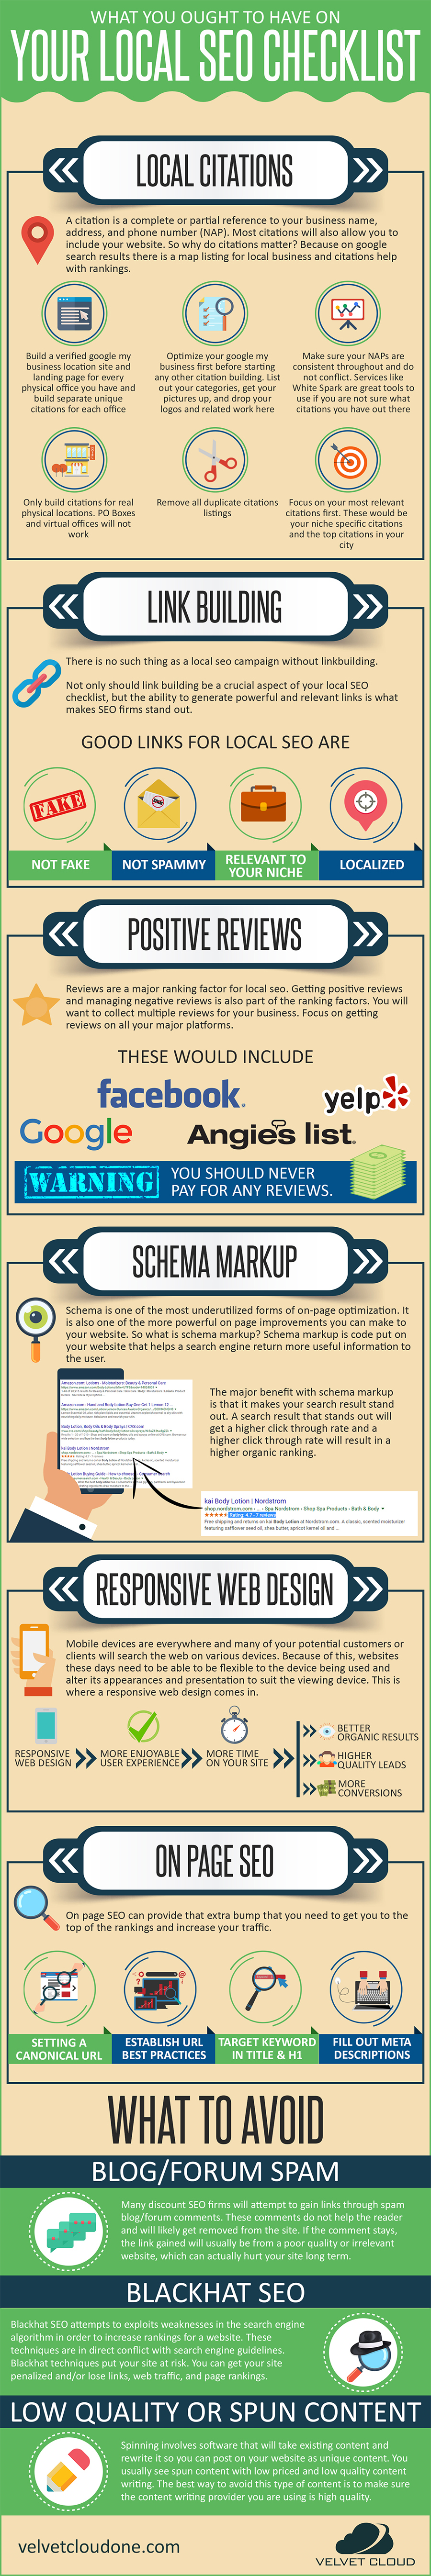 Infographic outlines a range of local SEO tips